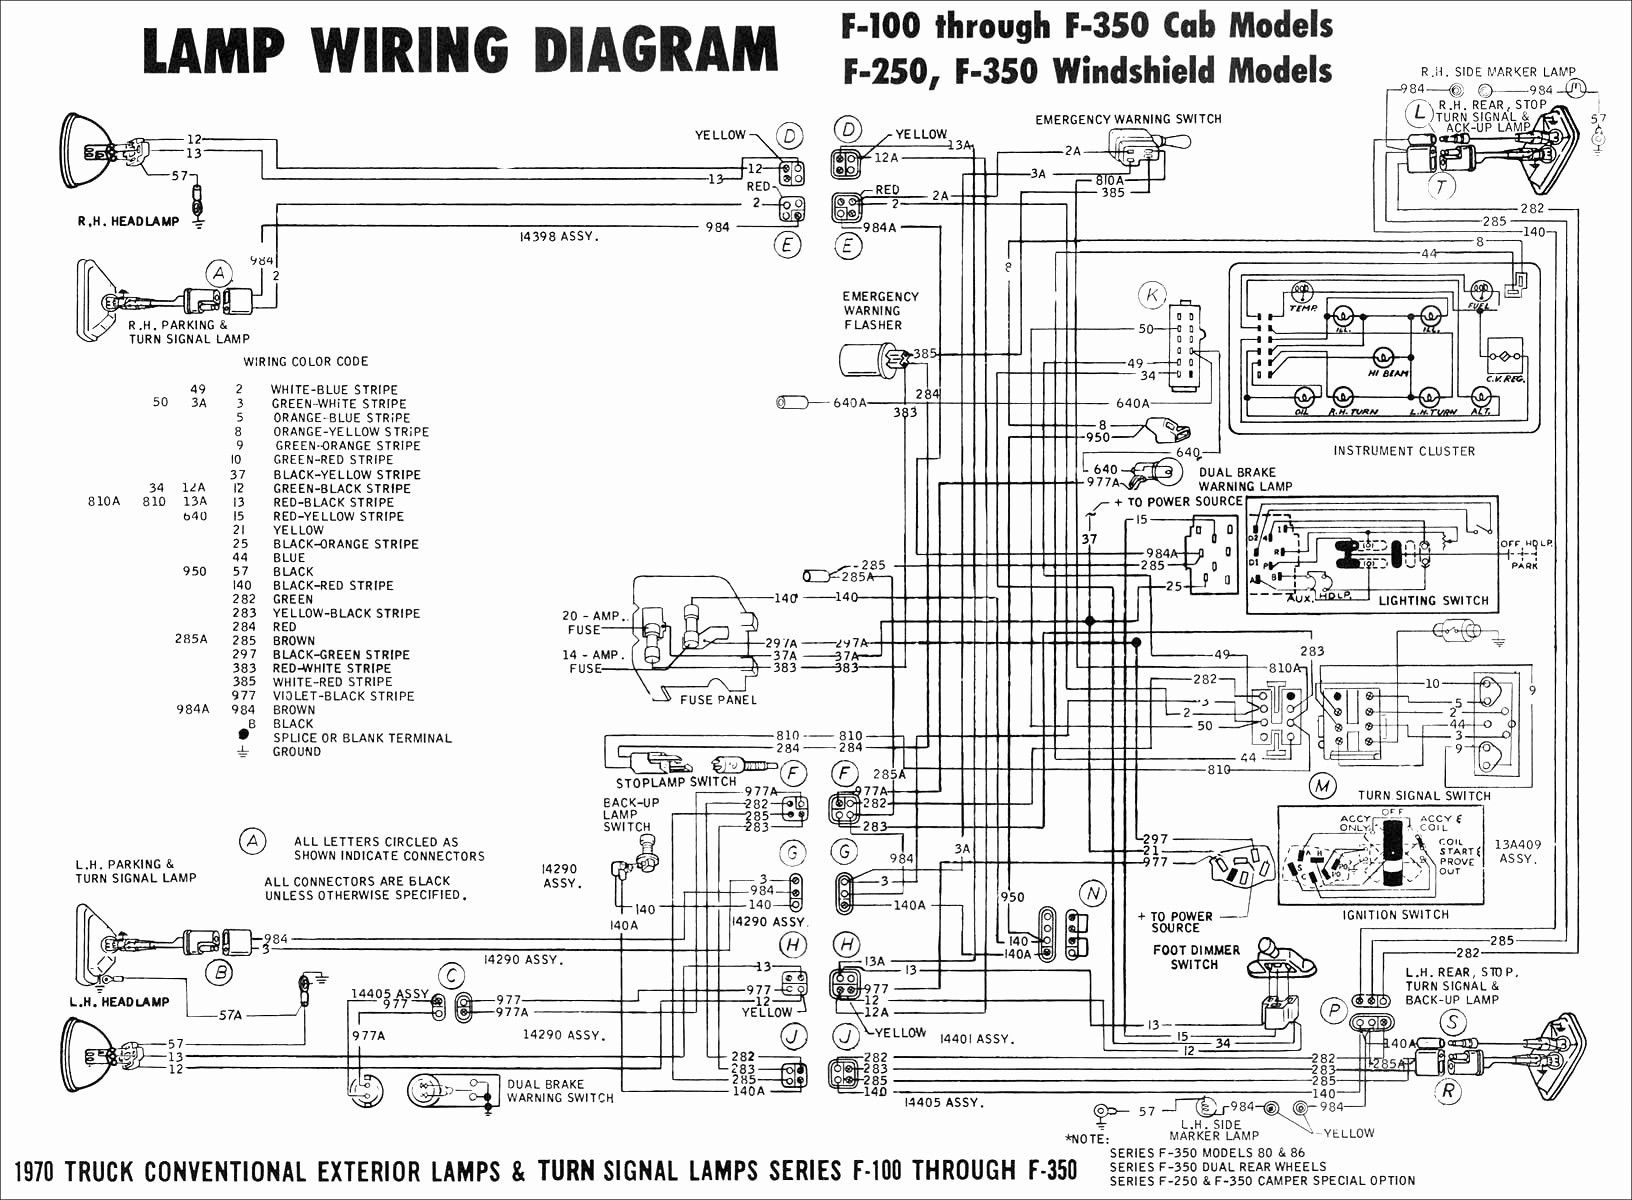 New Wiring Diagram Of A Distribution Board Electrical Wiring Diagram Diagram Circuit Diagram